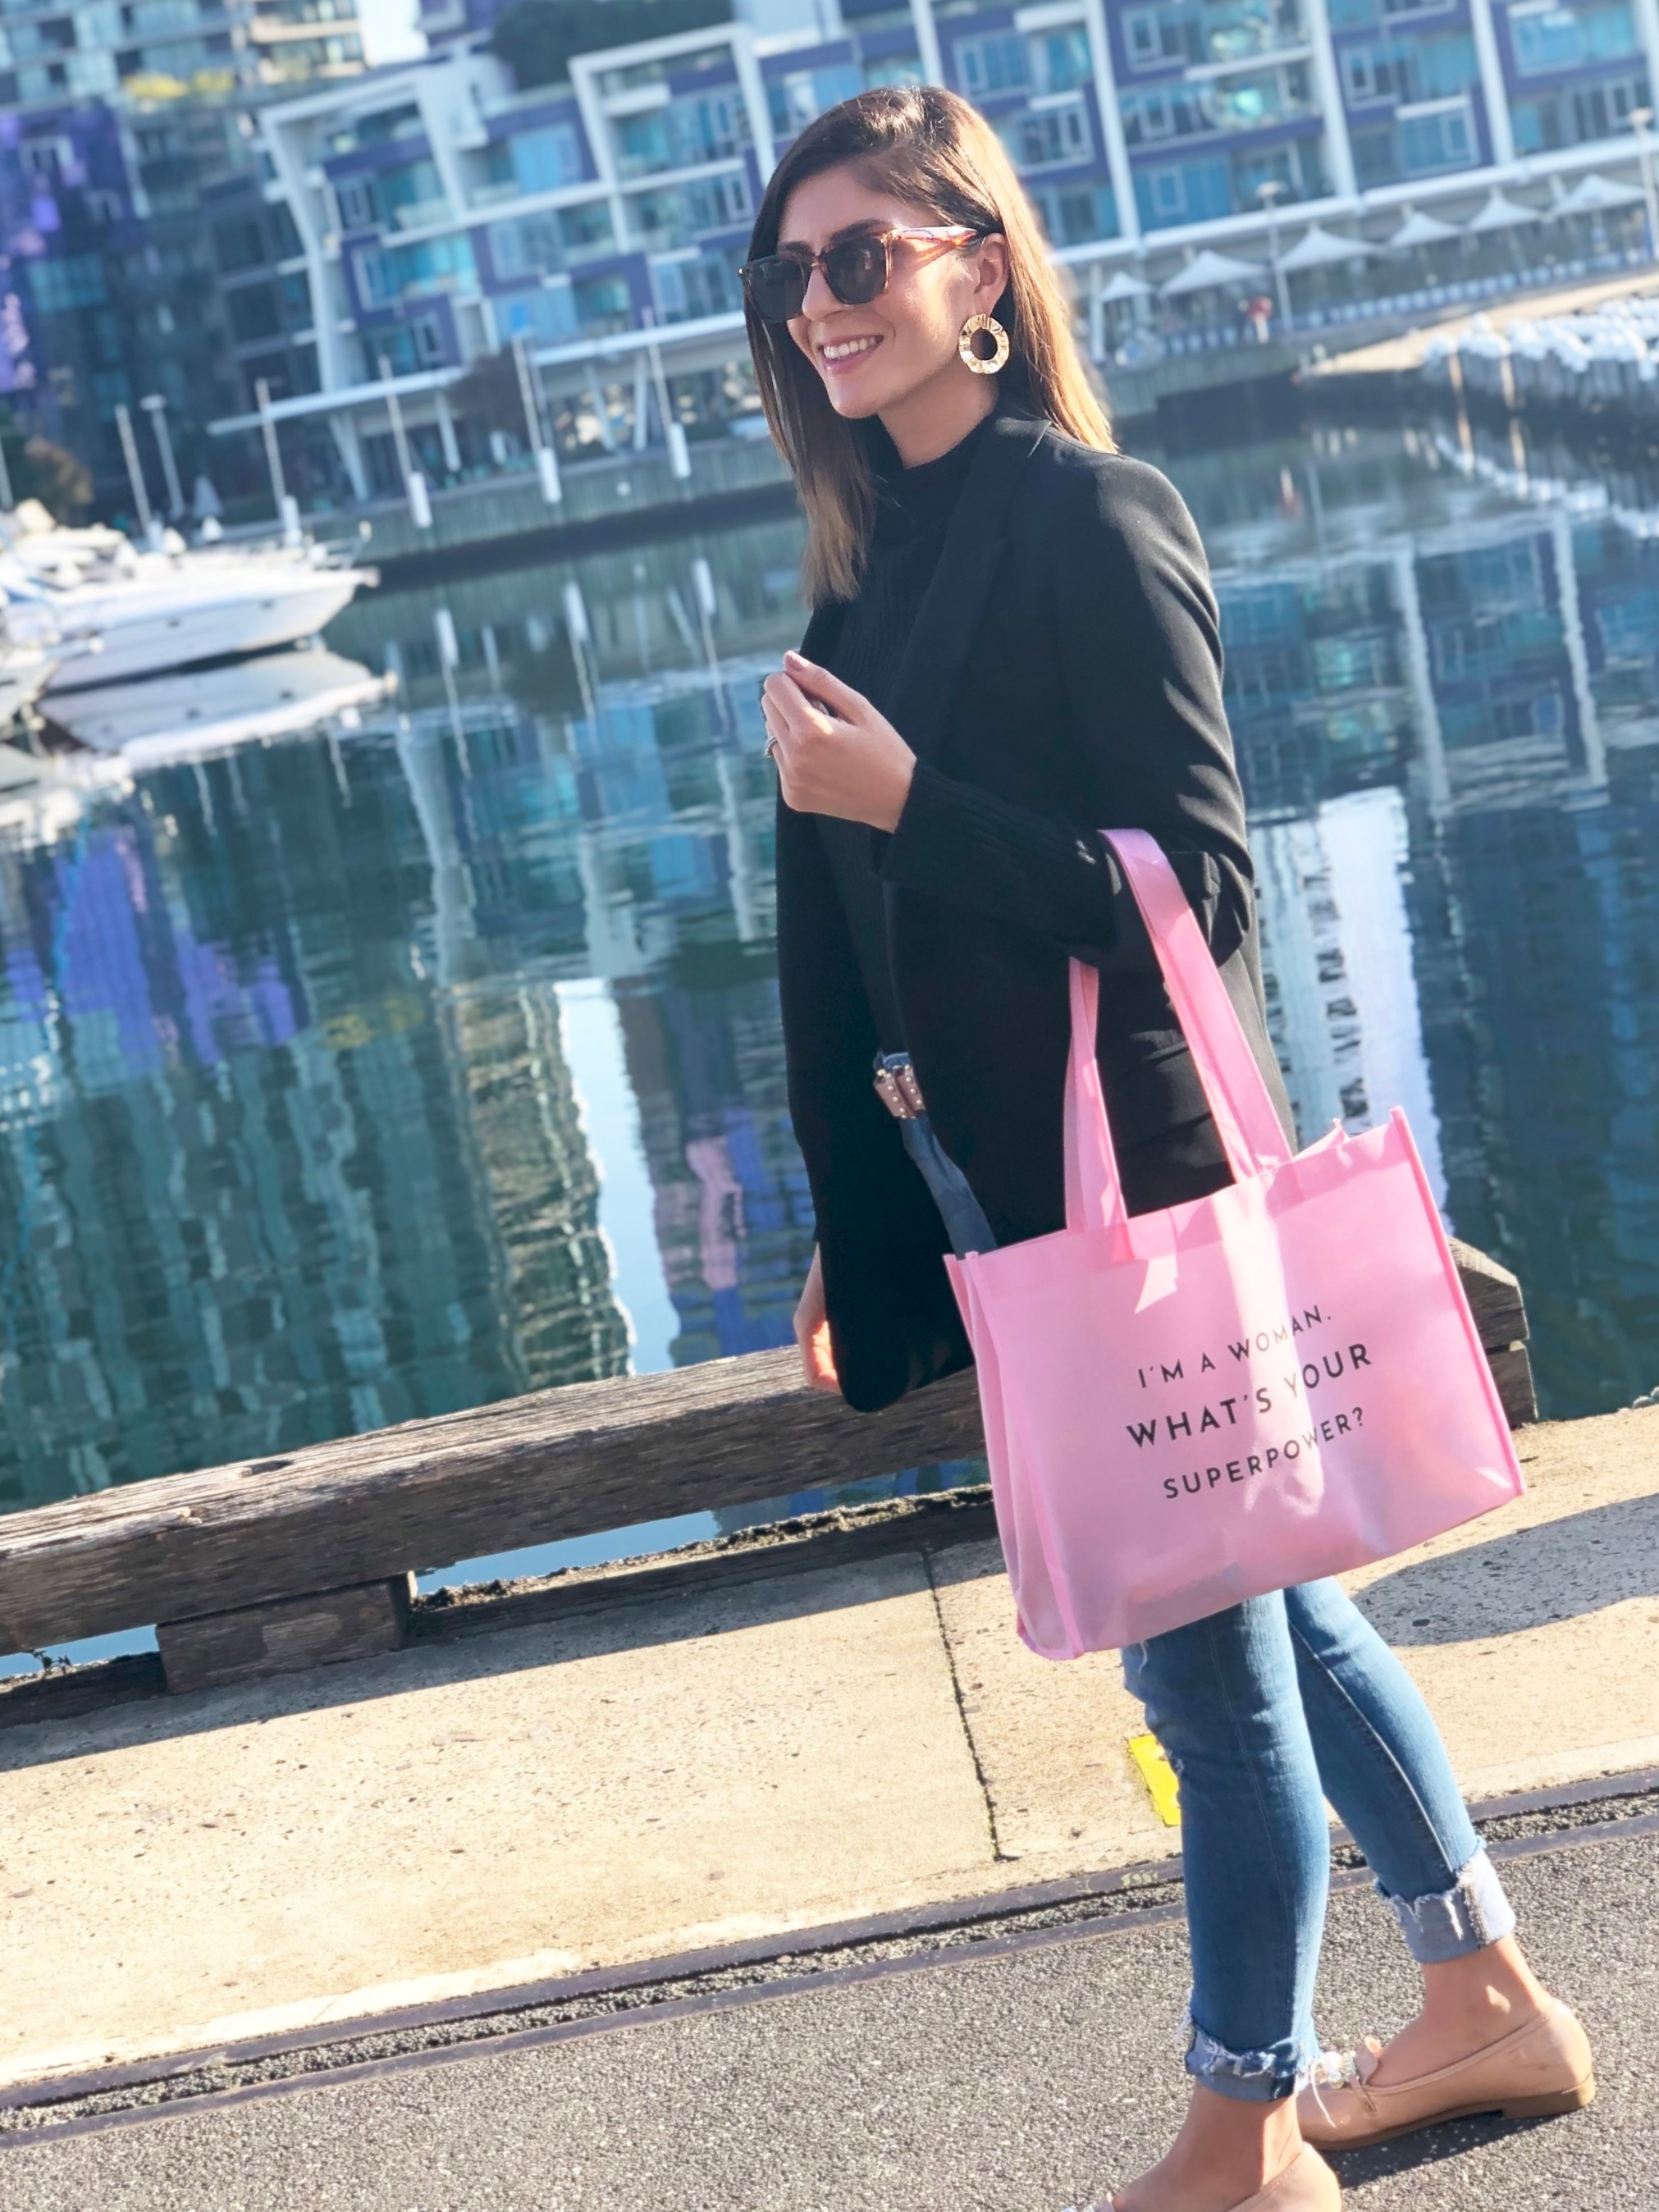 When Business Chicks Australia have super cool tote bags and quotes, you must take a picture! -